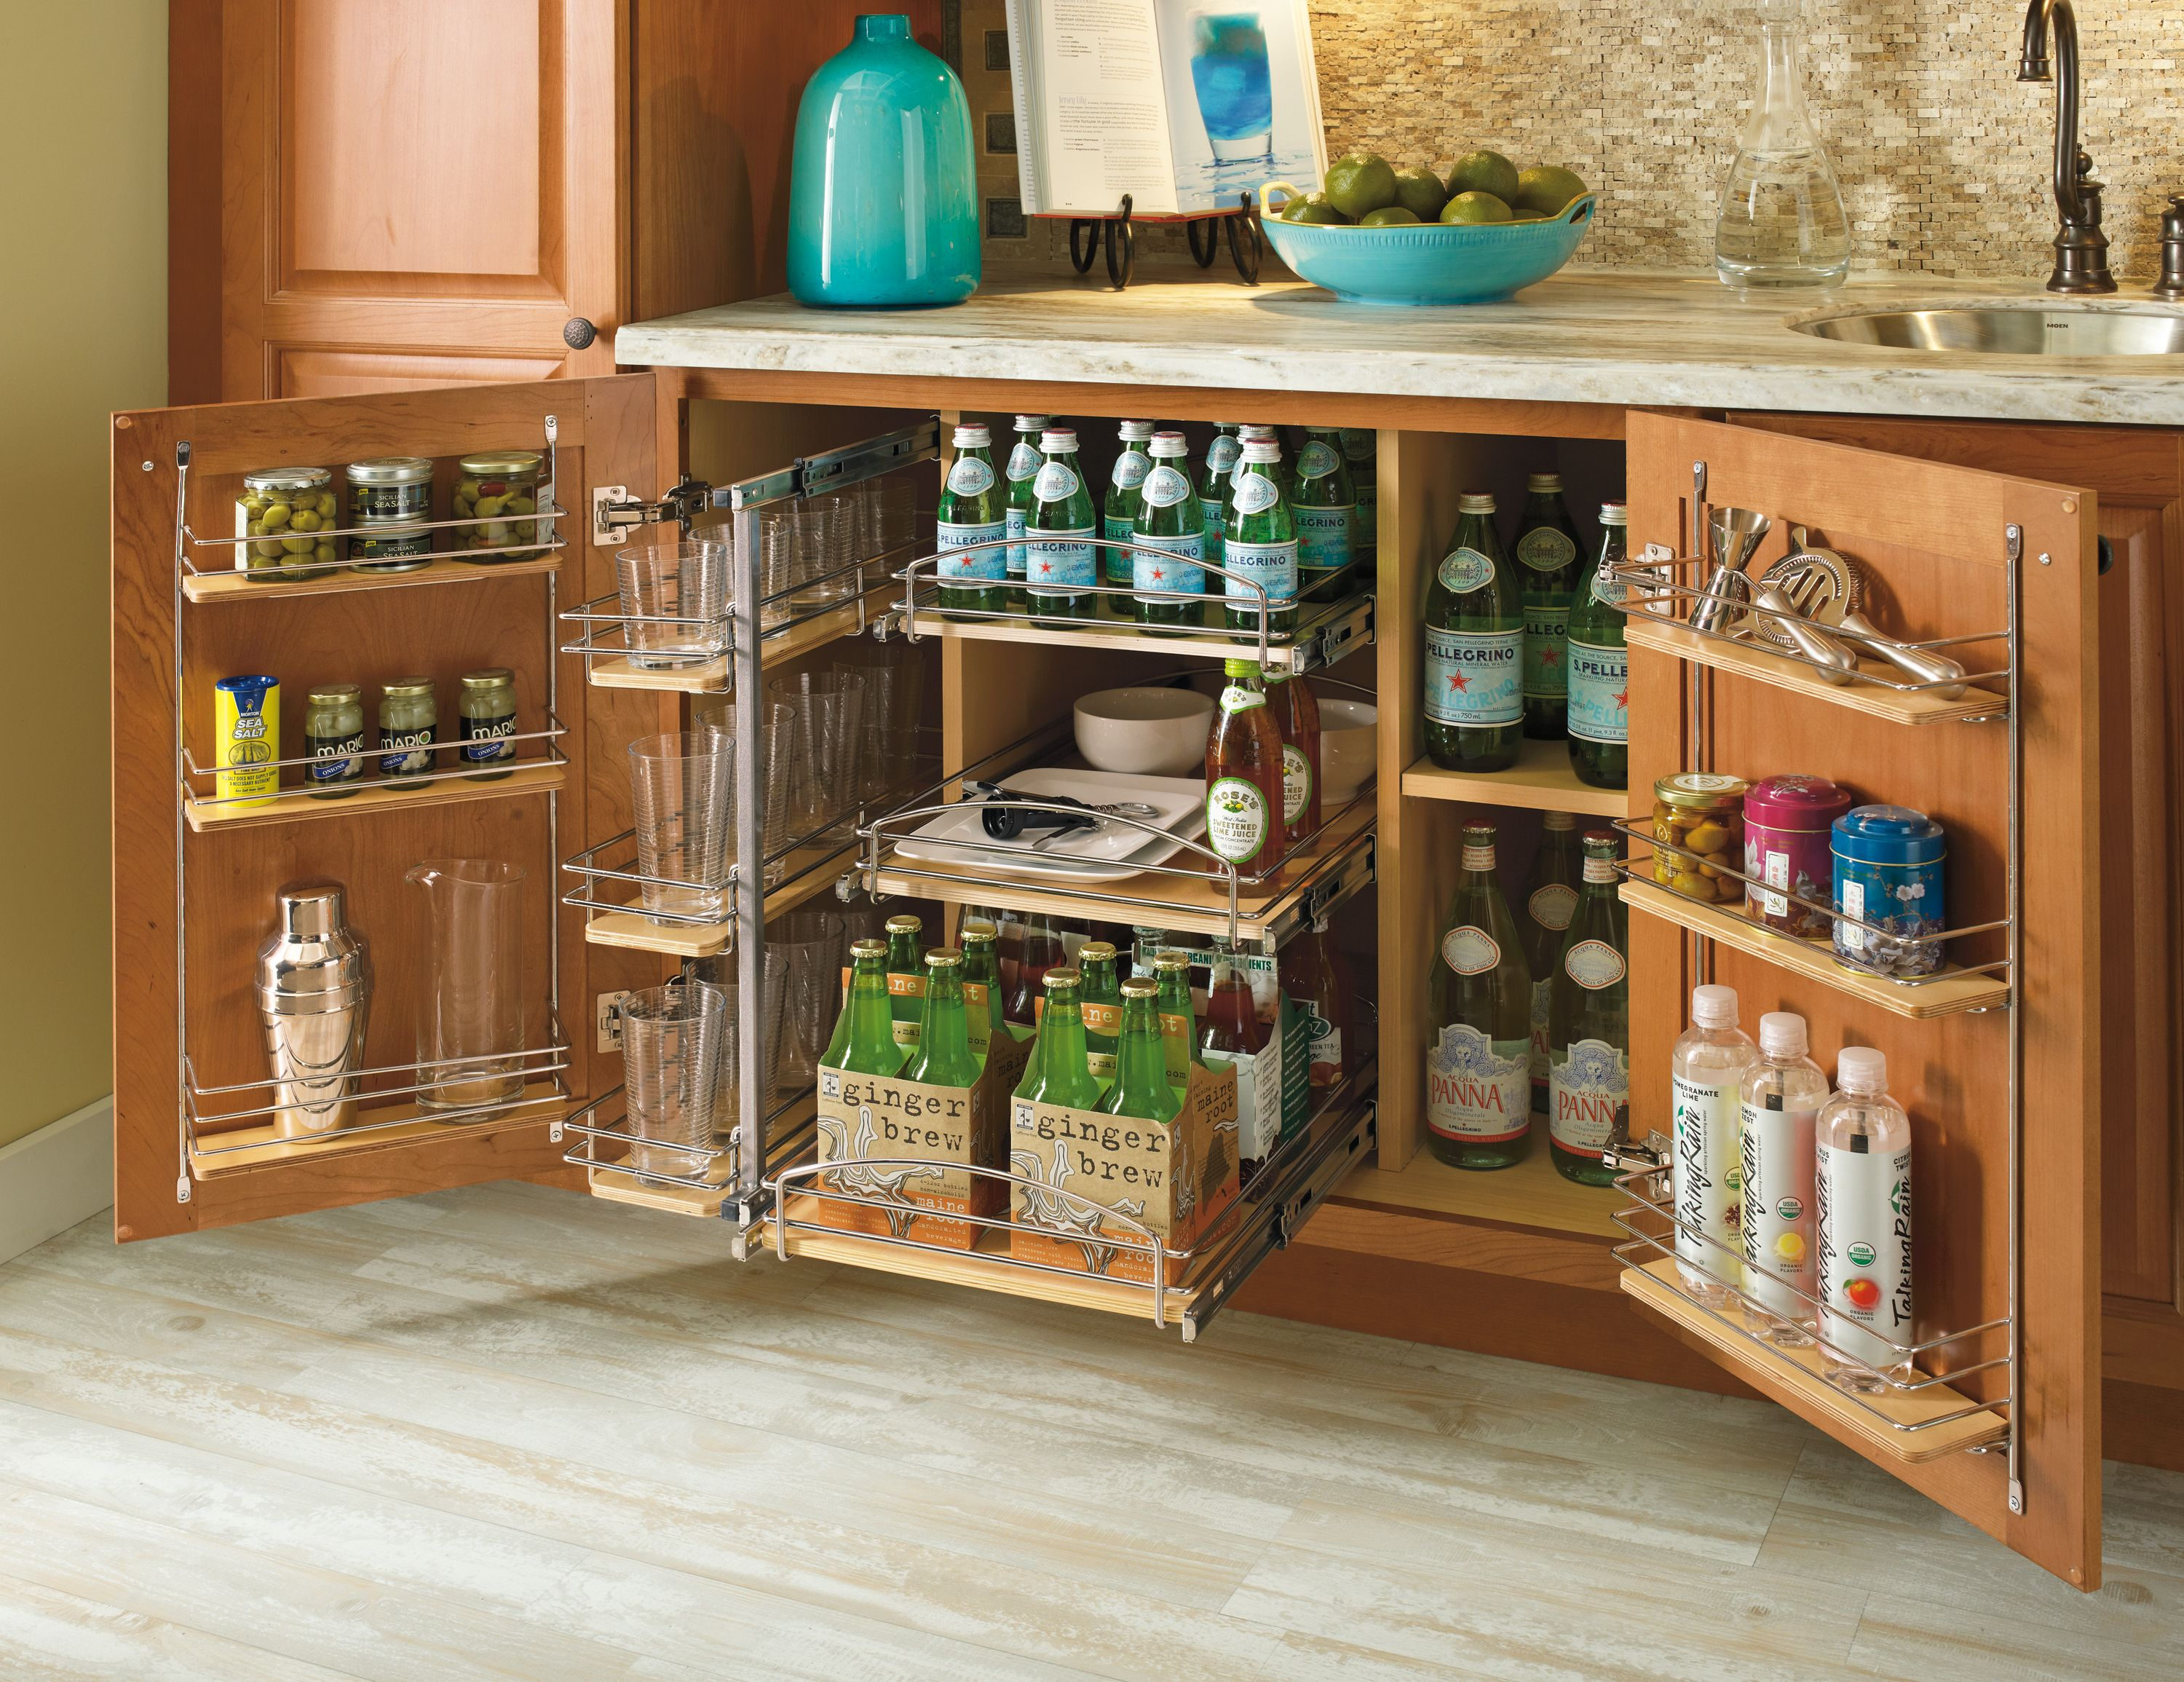 Singer kitchens cabinets to go new orleans stocked cabinets singer - Find This Pin And More On Cabinet Organization